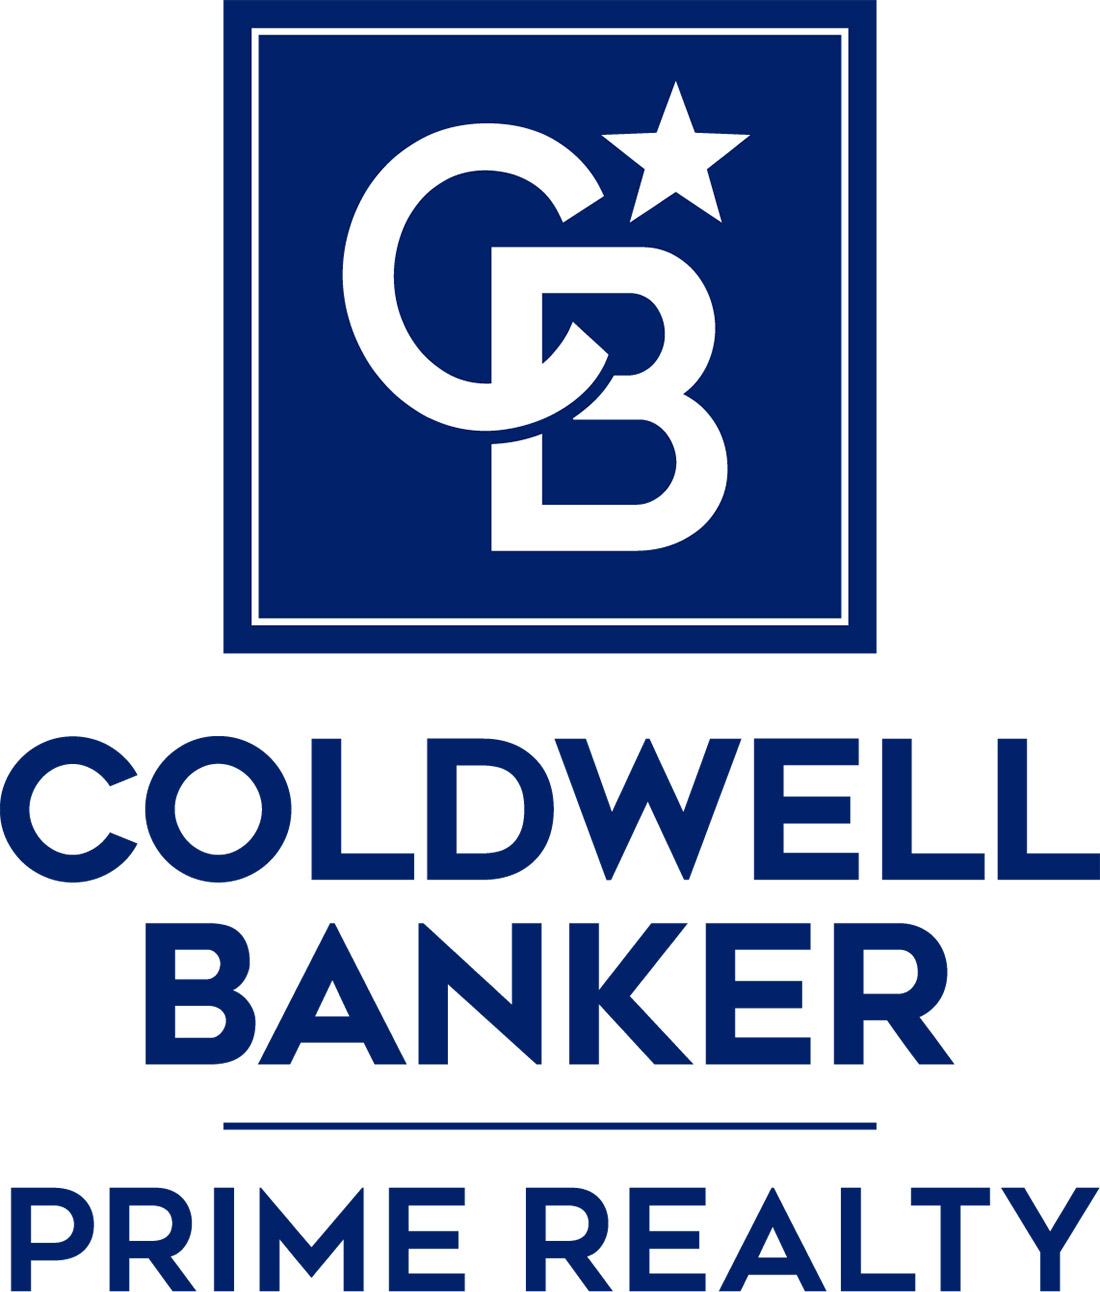 Anthony Barbato - Coldwell Banker Prime Realty - Carbondale, IL Logo